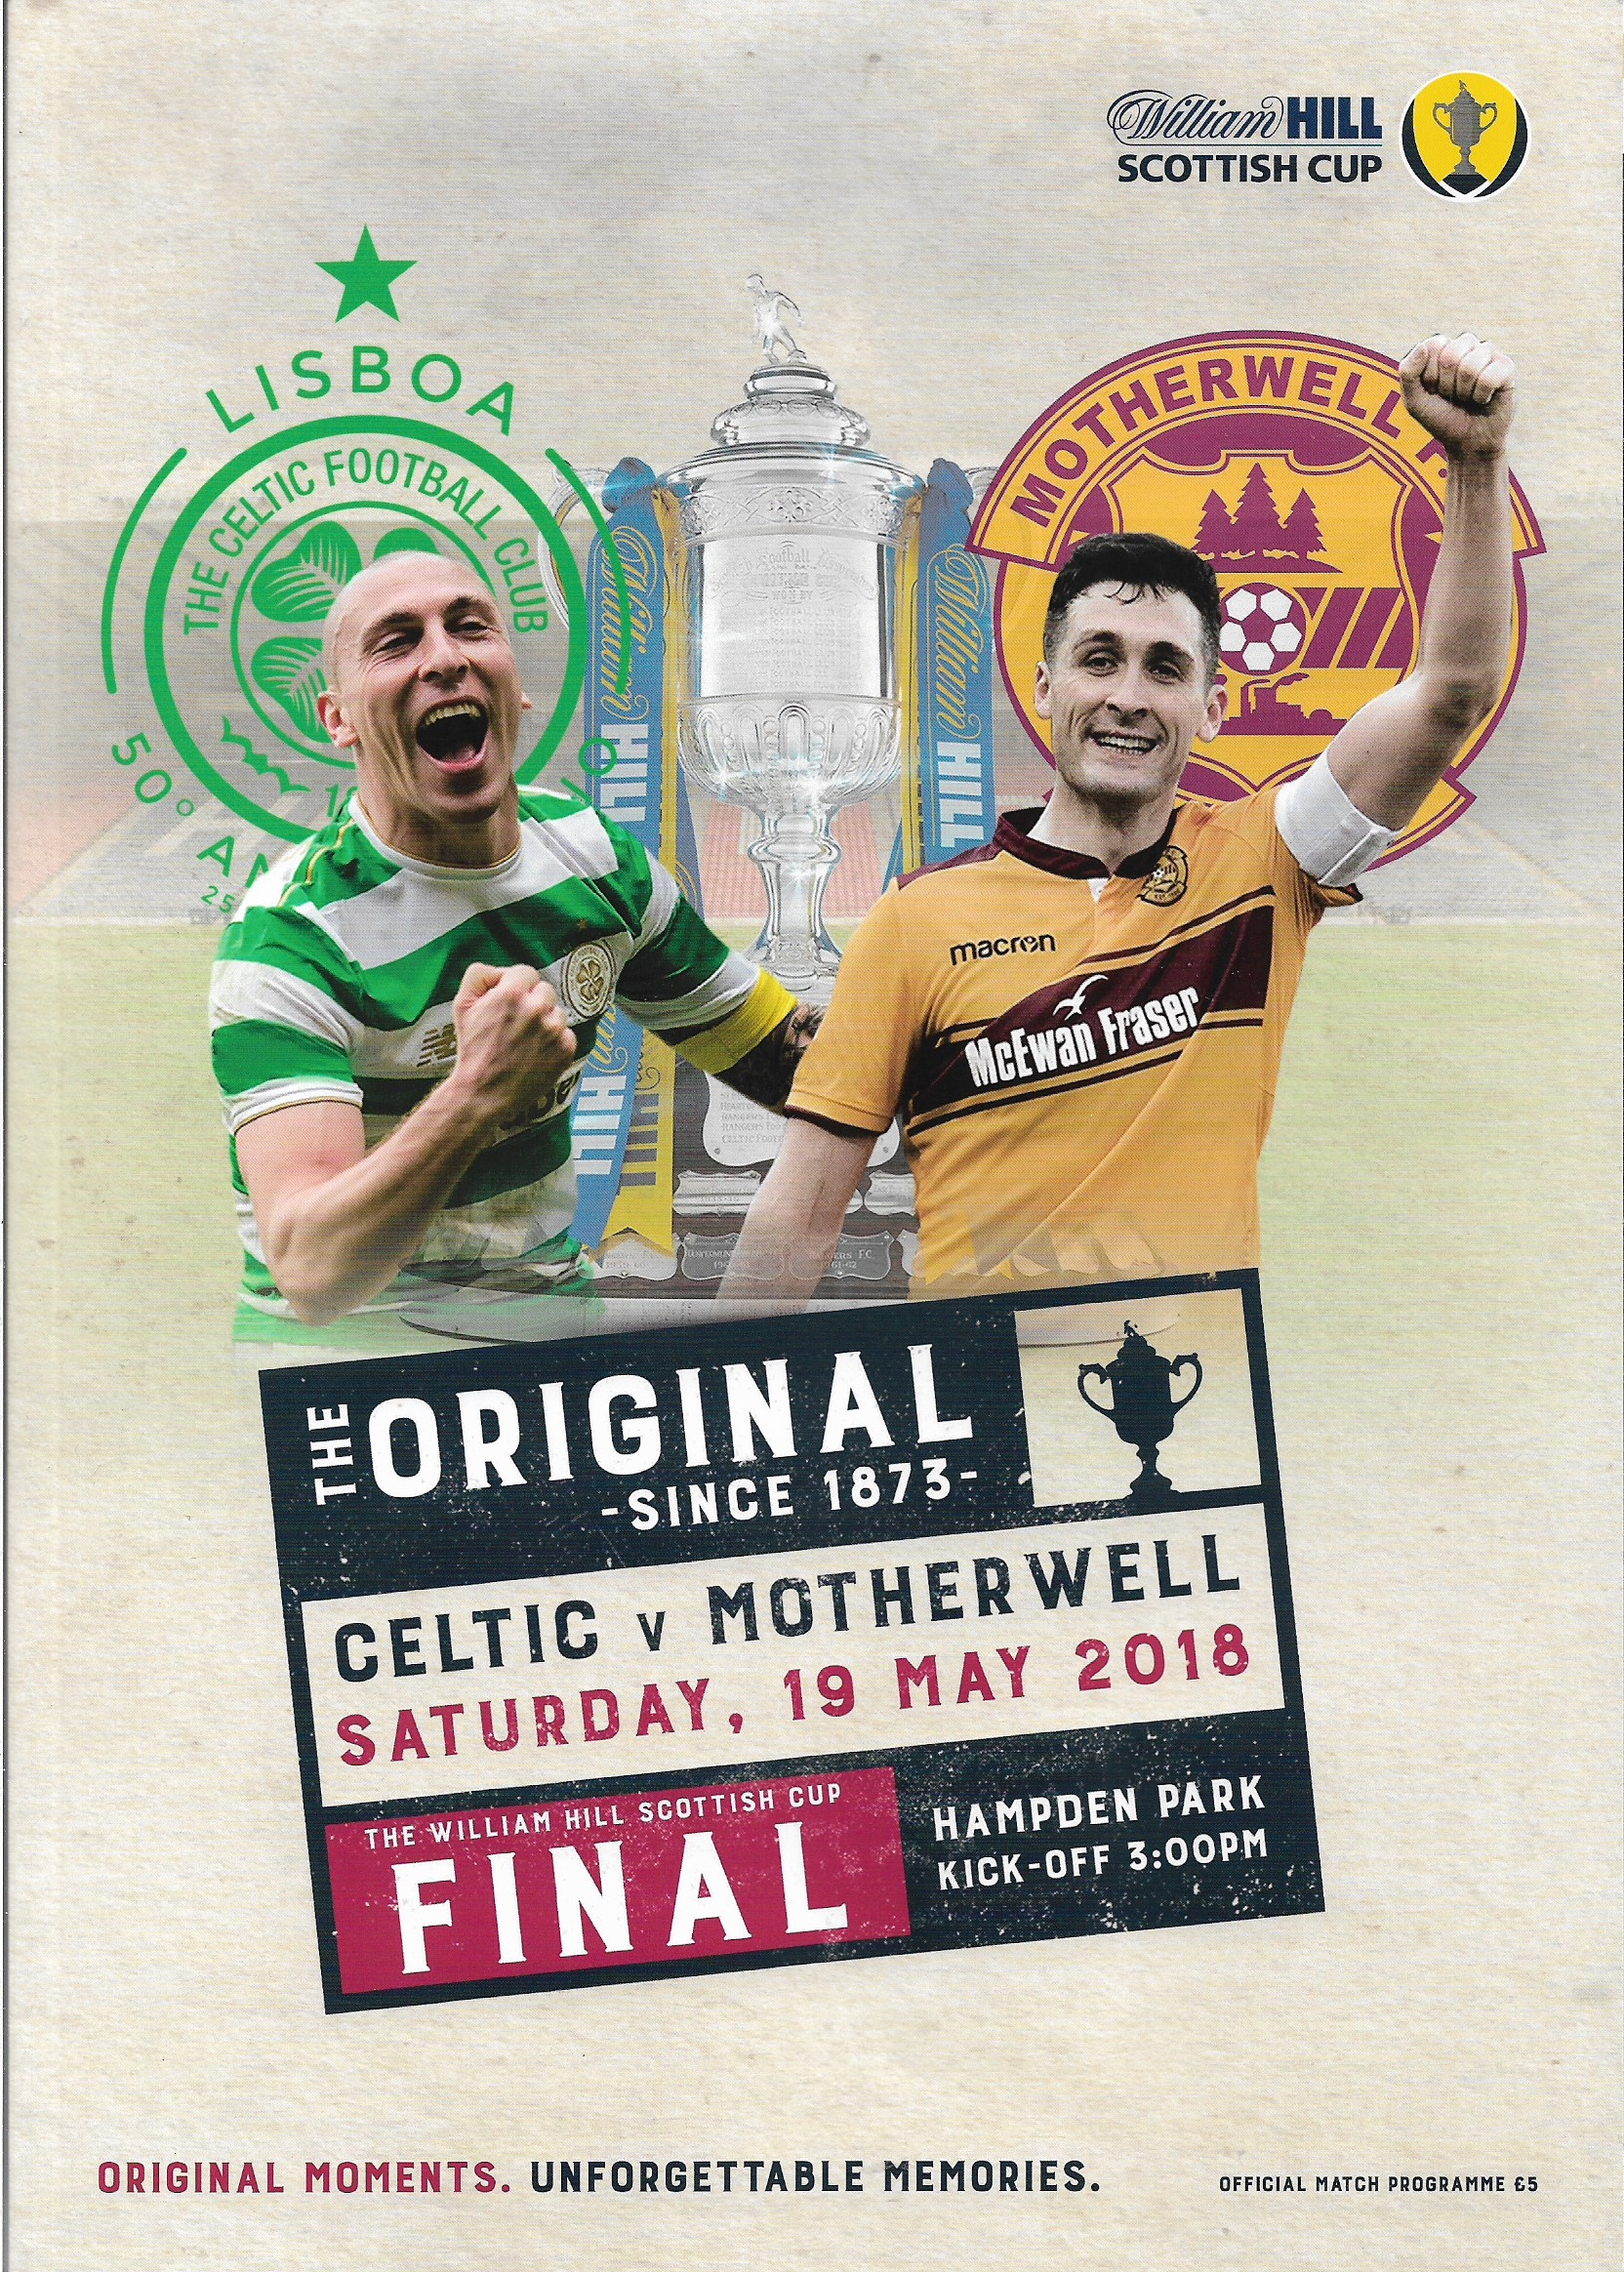 2018 Scottish Cup Final Programme Cover